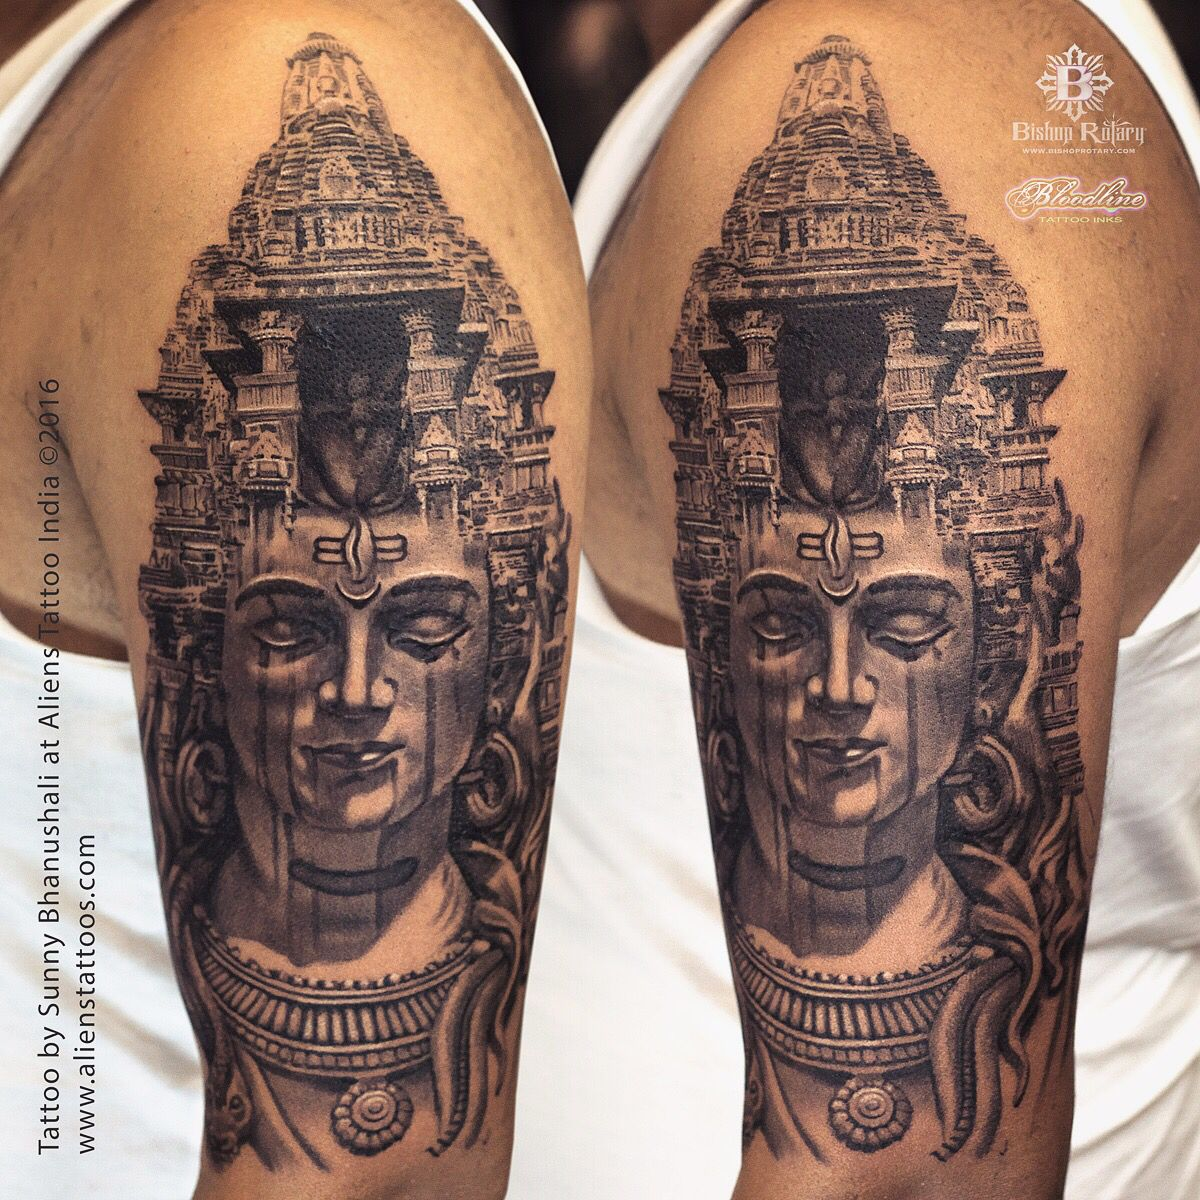 temple of lord shiva tattoo by sunny bhanushali at aliens tattoo india client traveled. Black Bedroom Furniture Sets. Home Design Ideas